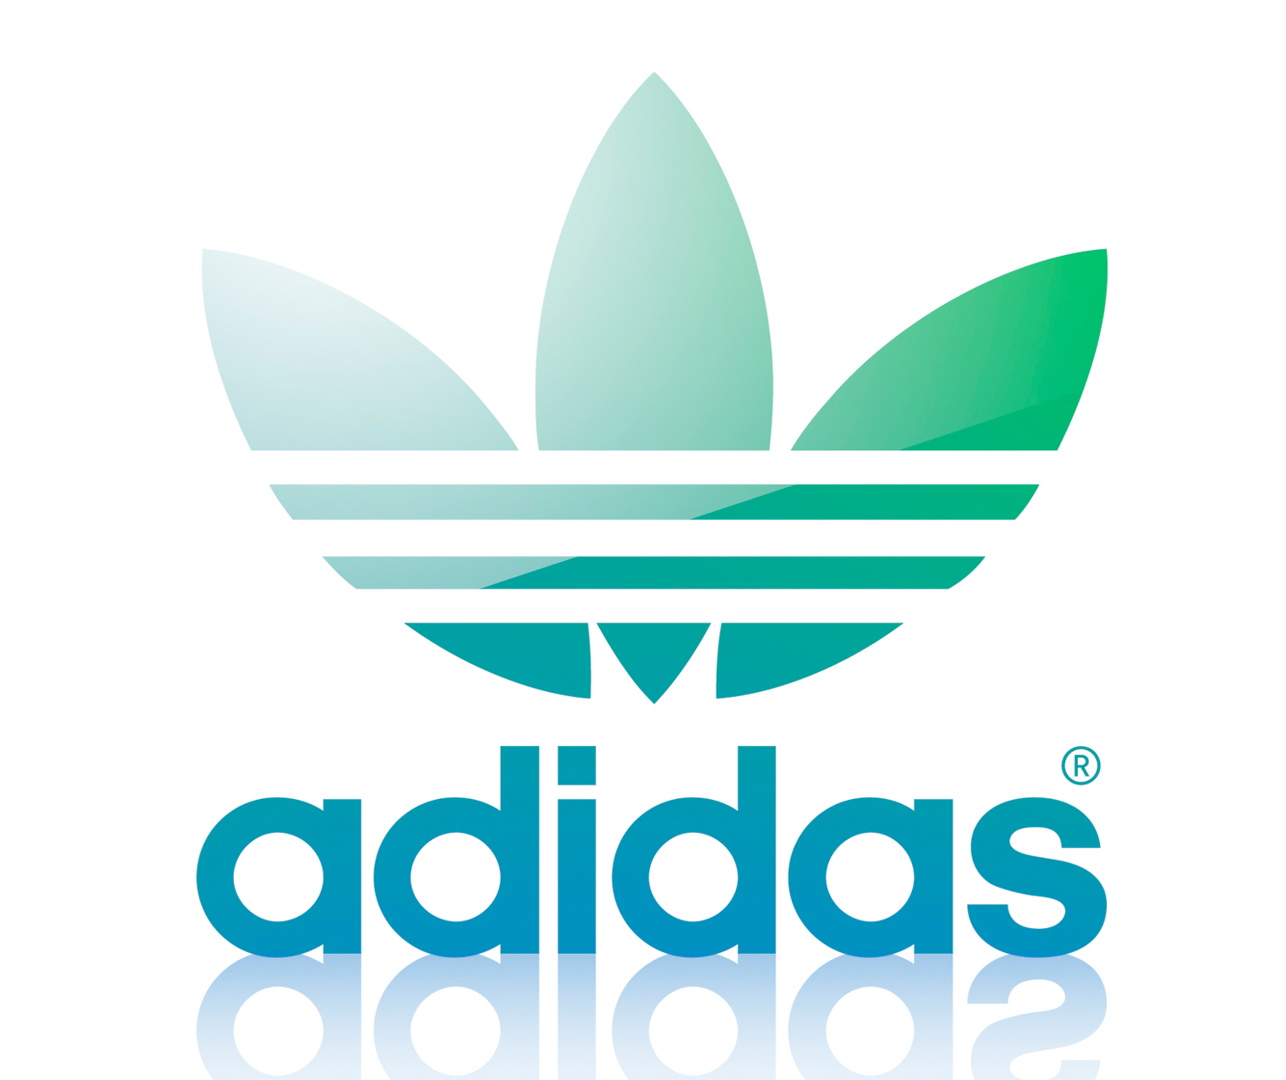 It's all about Adidas: Introduction